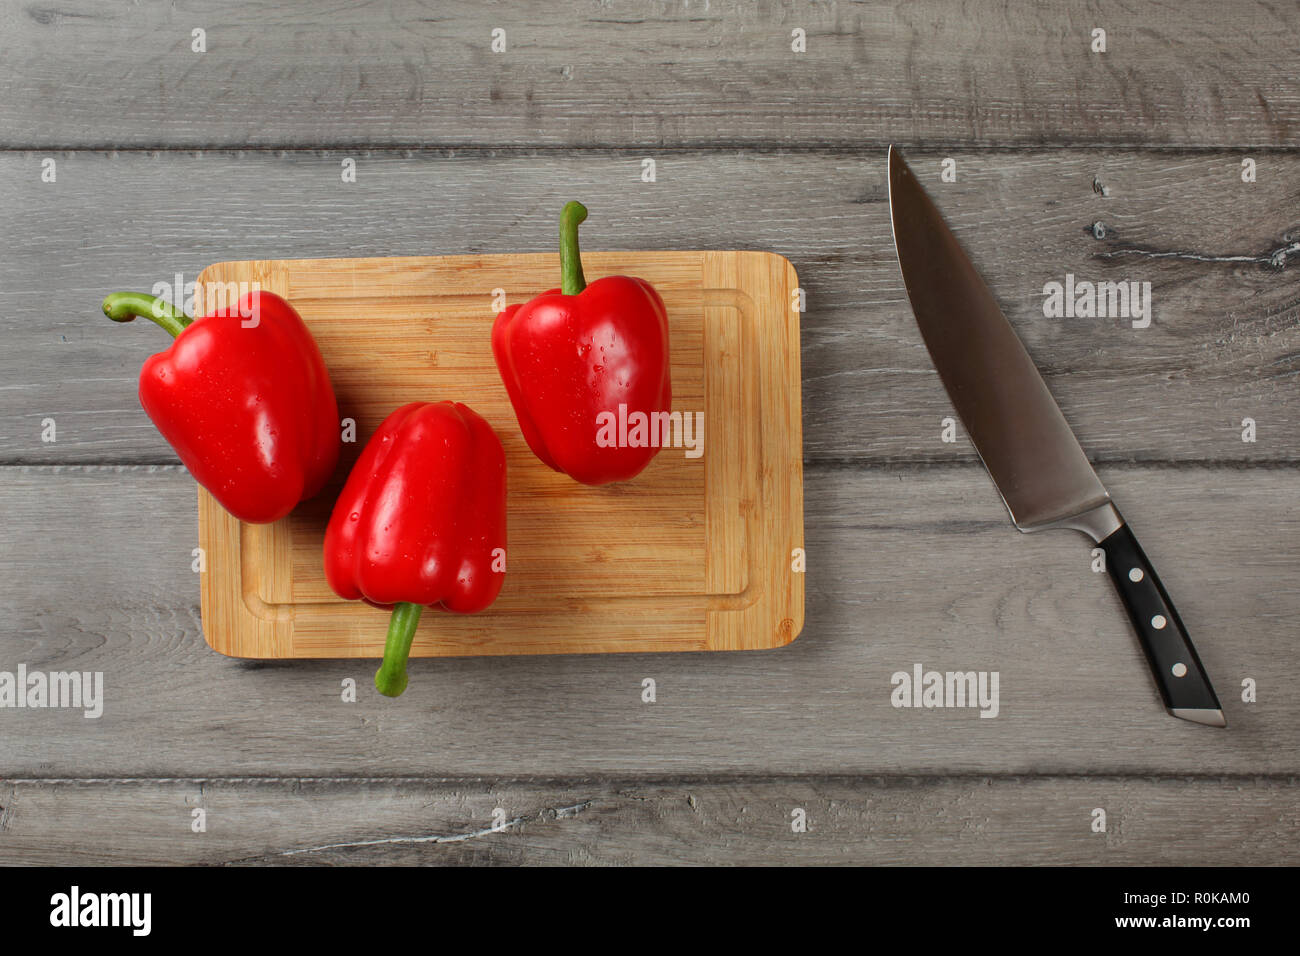 Tabletop view, three red bell peppers, sprayed with drops of water, ready to be cut on chopping board, with chef knife at side. - Stock Image